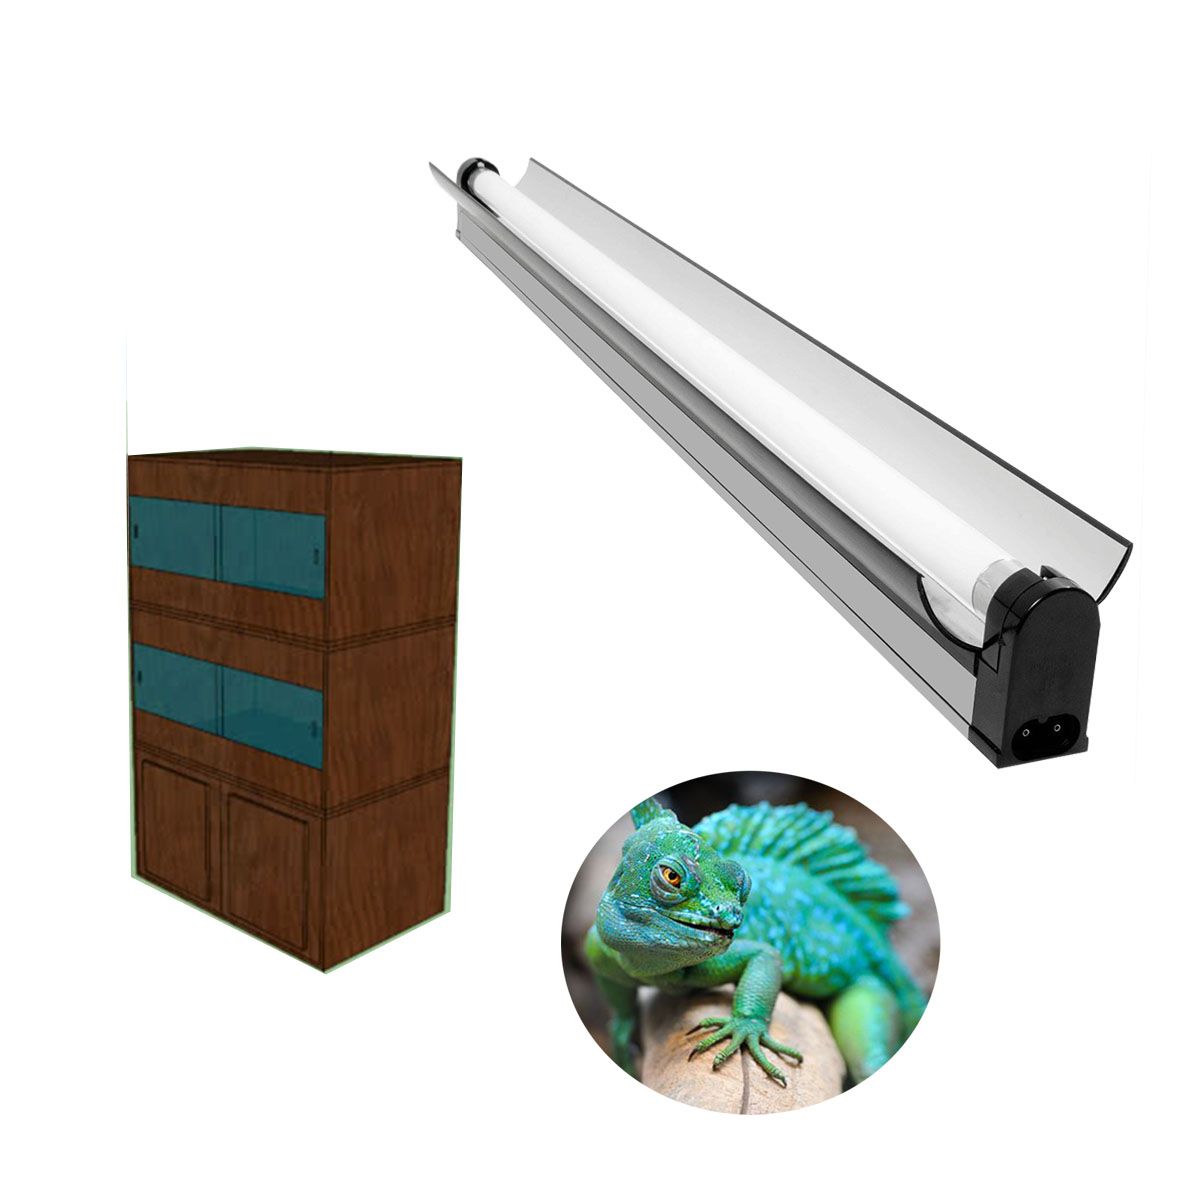 T5 HO reptile fixtures plant lighting fluorescent reflector bulb tube grow lights lamp